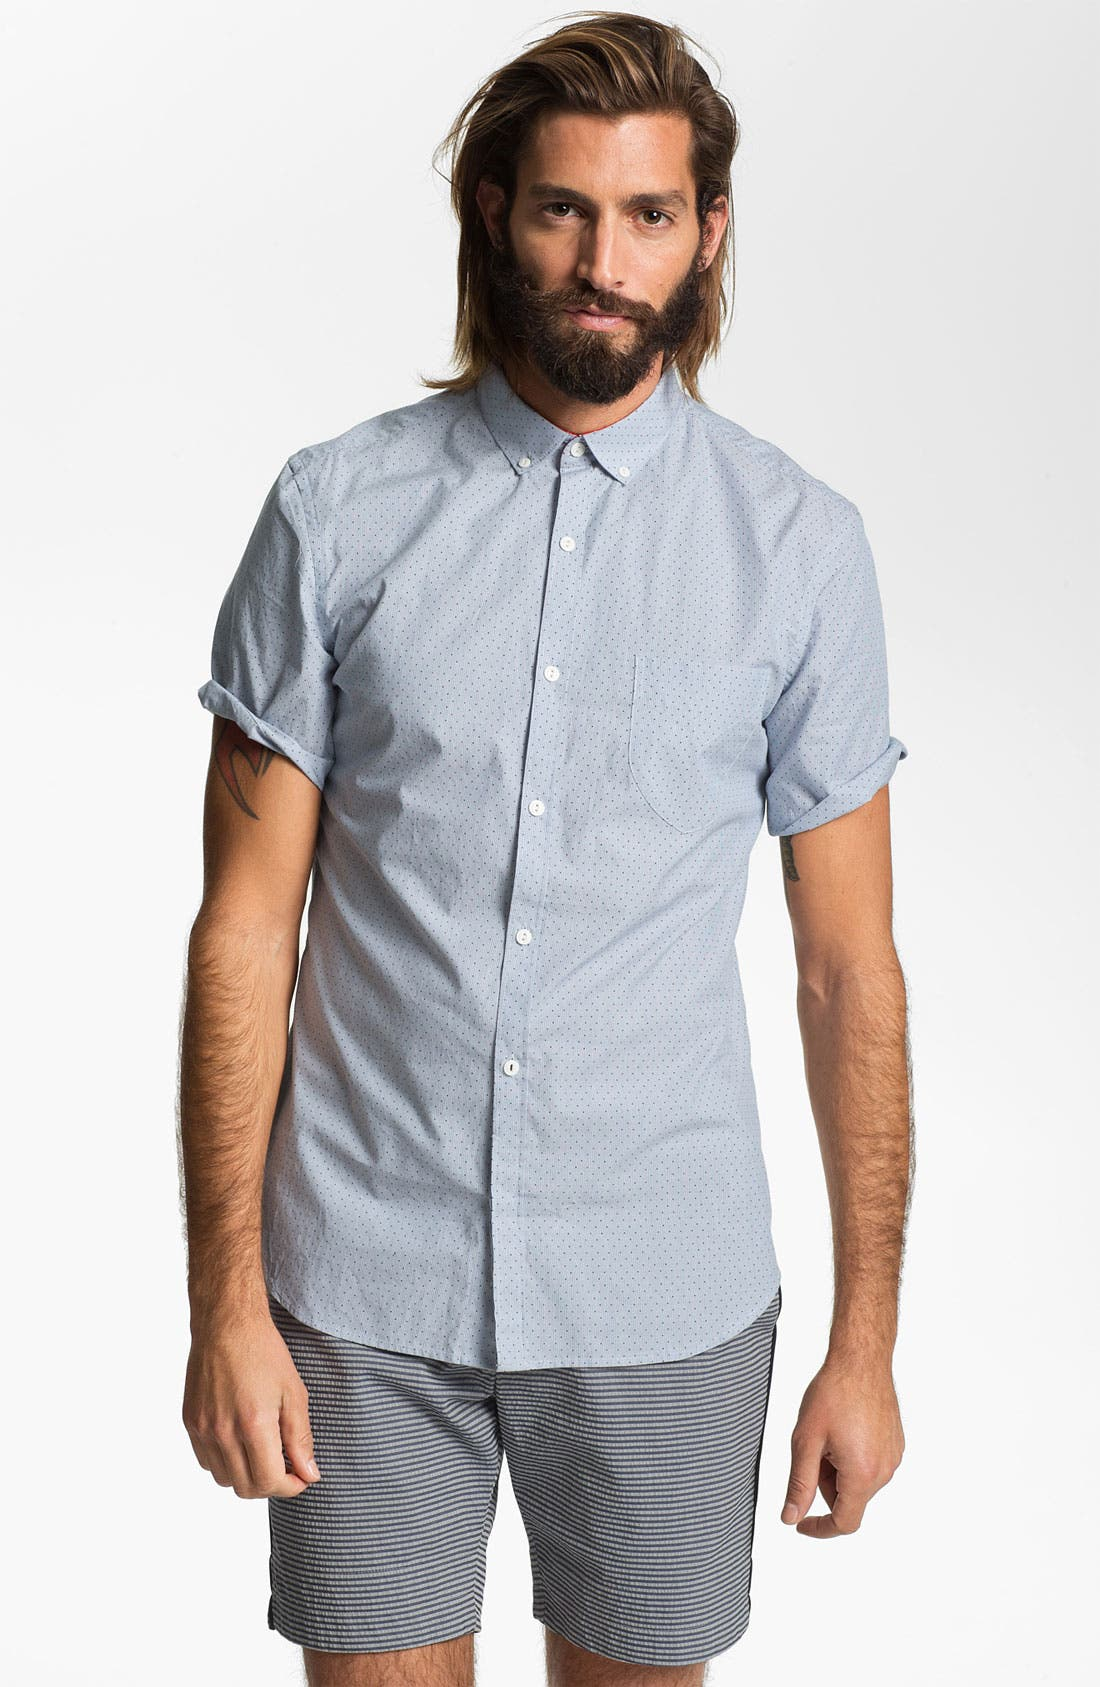 Alternate Image 1 Selected - French Connection Regular Fit Sport Shirt (Online Only)